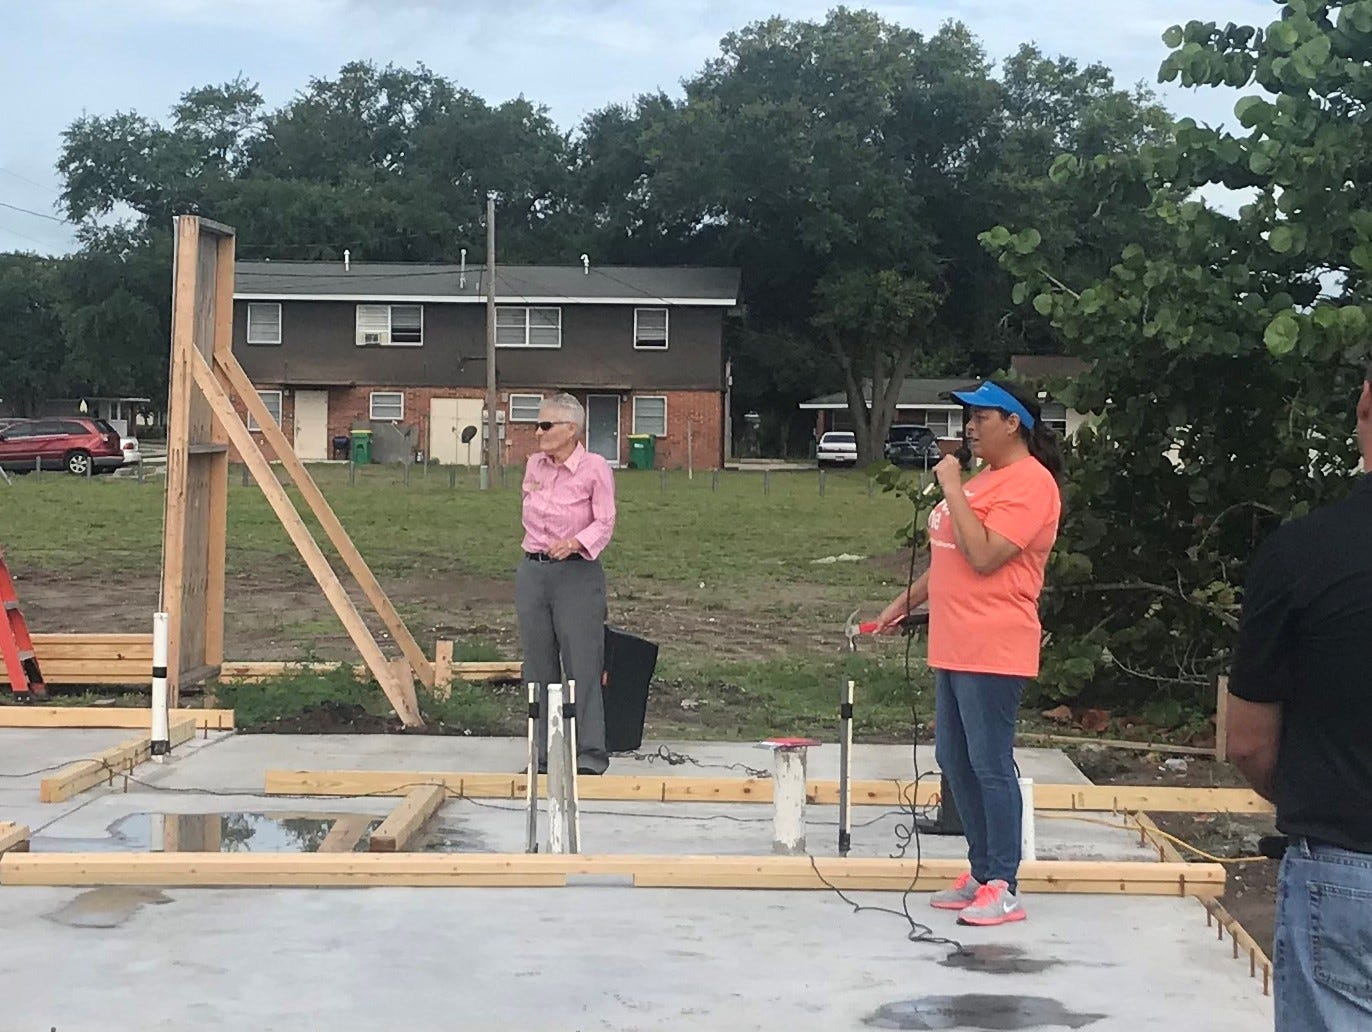 Habitat for Humanity of Brevard executive director Mary Kelly, right, listens Monday morning as Army veteran Karla Griggs talks with those gathered at the wall raising of her new home. Griggs' home is the first of six houses Habitat for Humanity of Brevard is building in Cocoa's Diamond Square neighborhood.